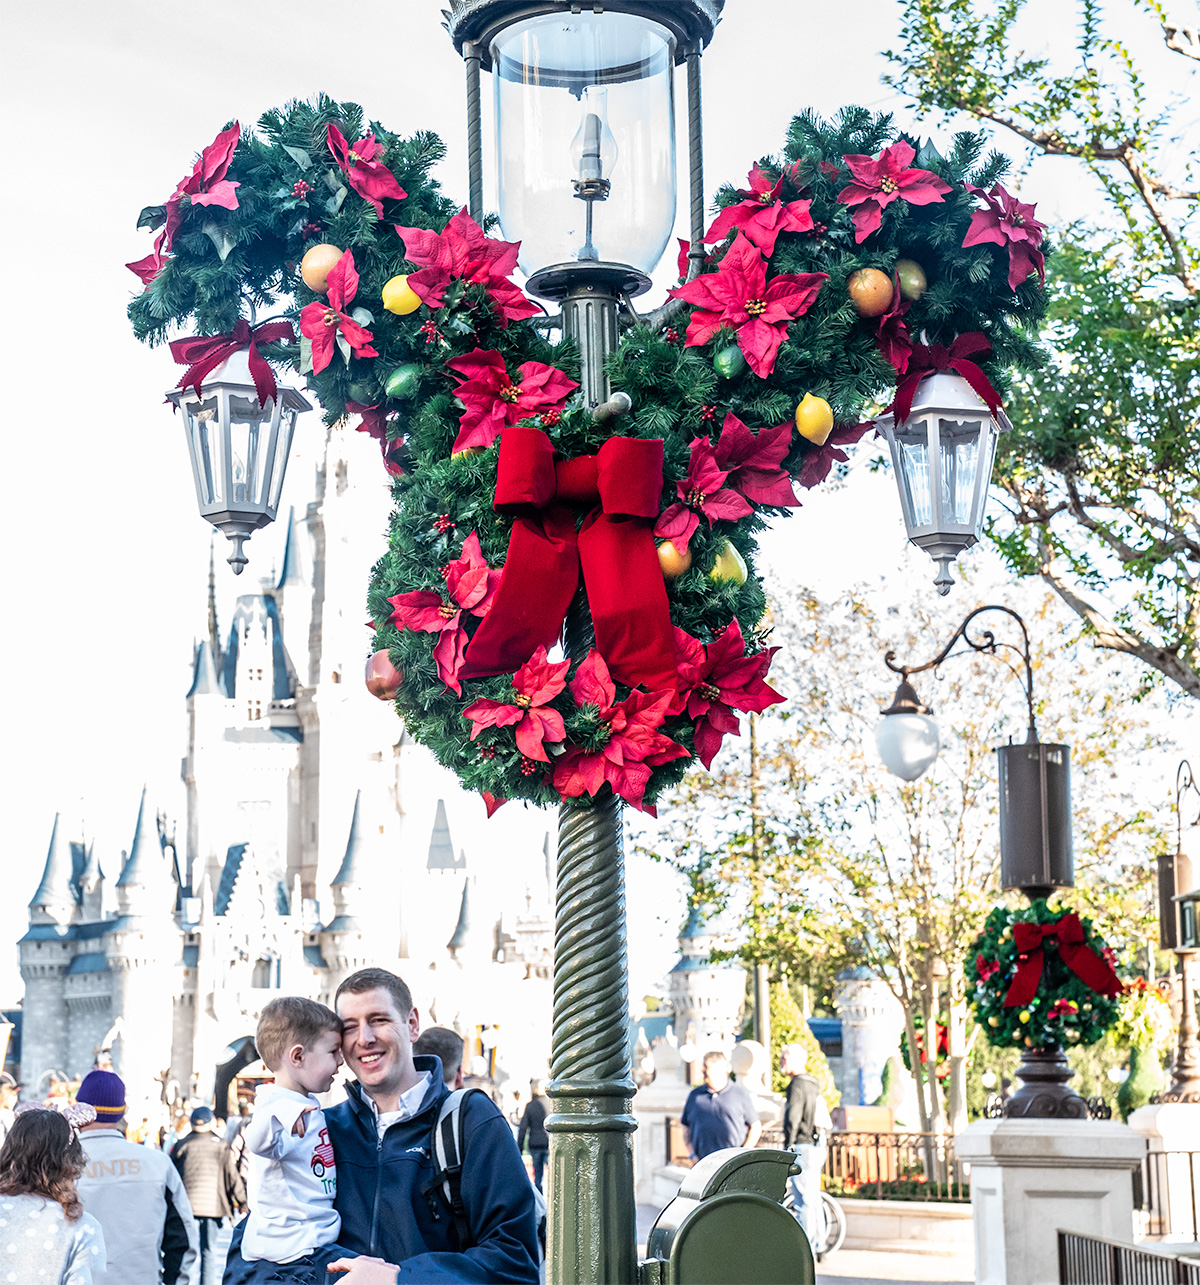 The-Christmas-Decor-Magic-Kingdom-Walt-Disney-World